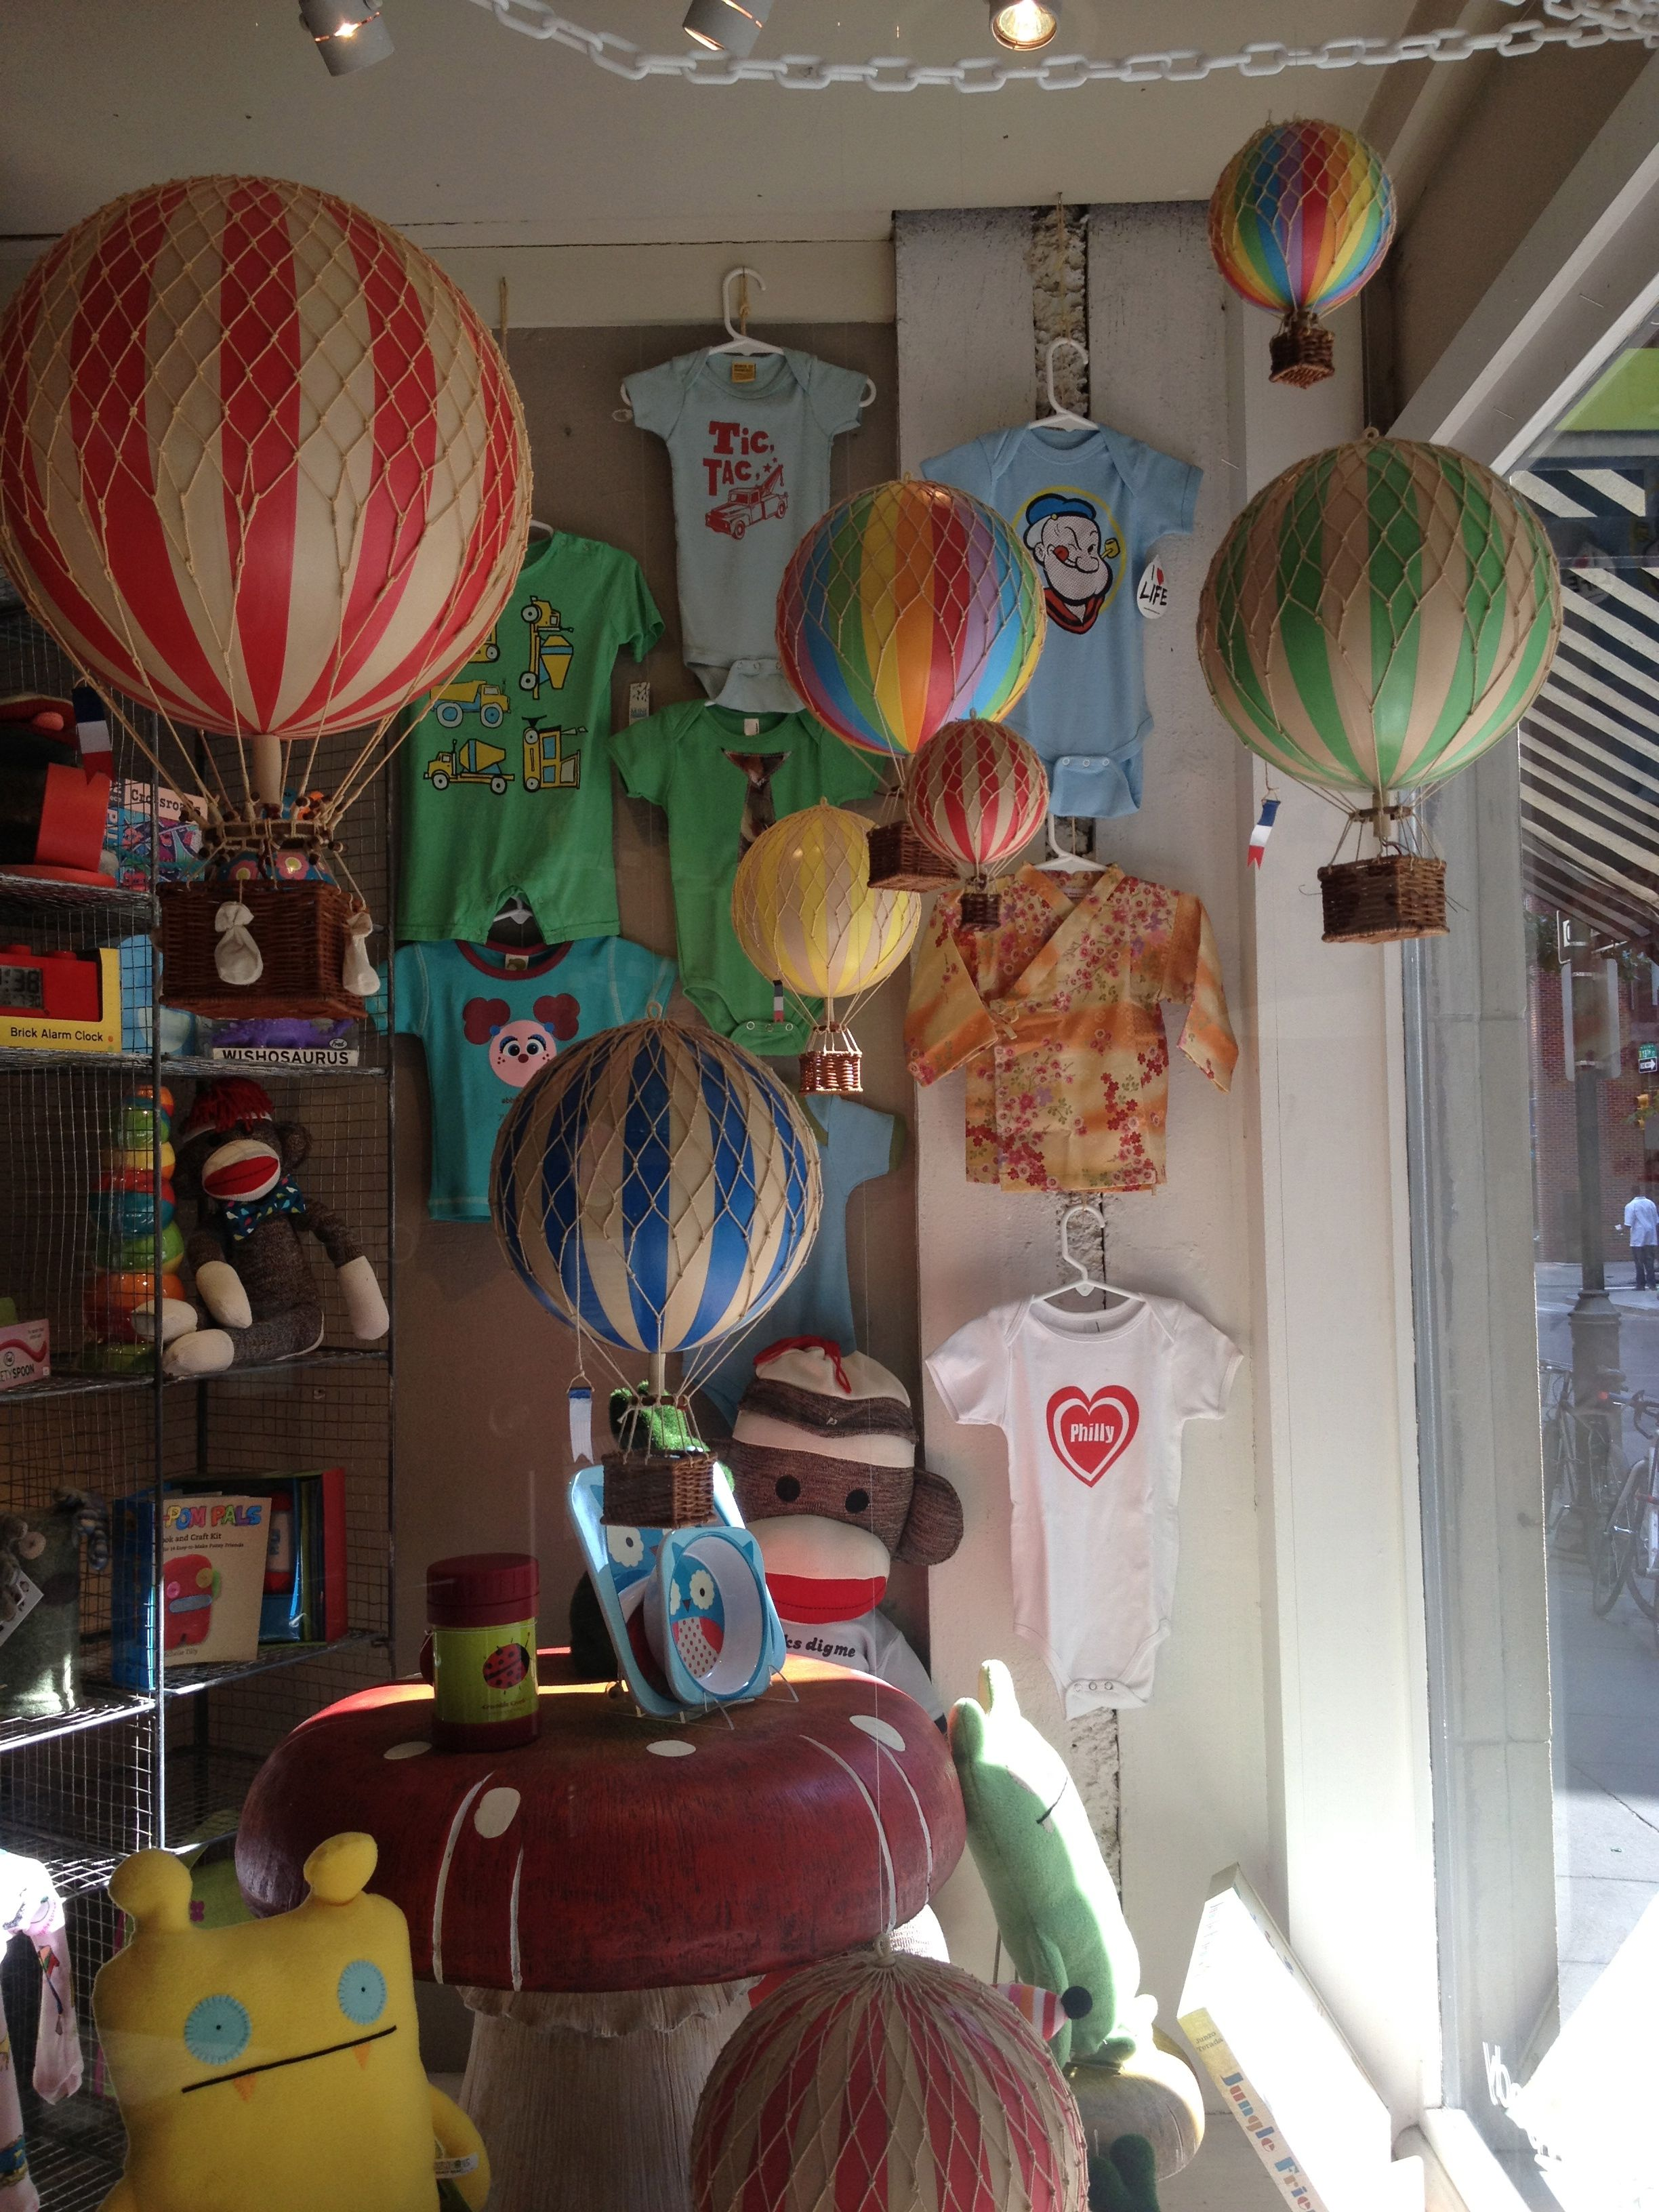 The store window that inspired me to go with Hot Air